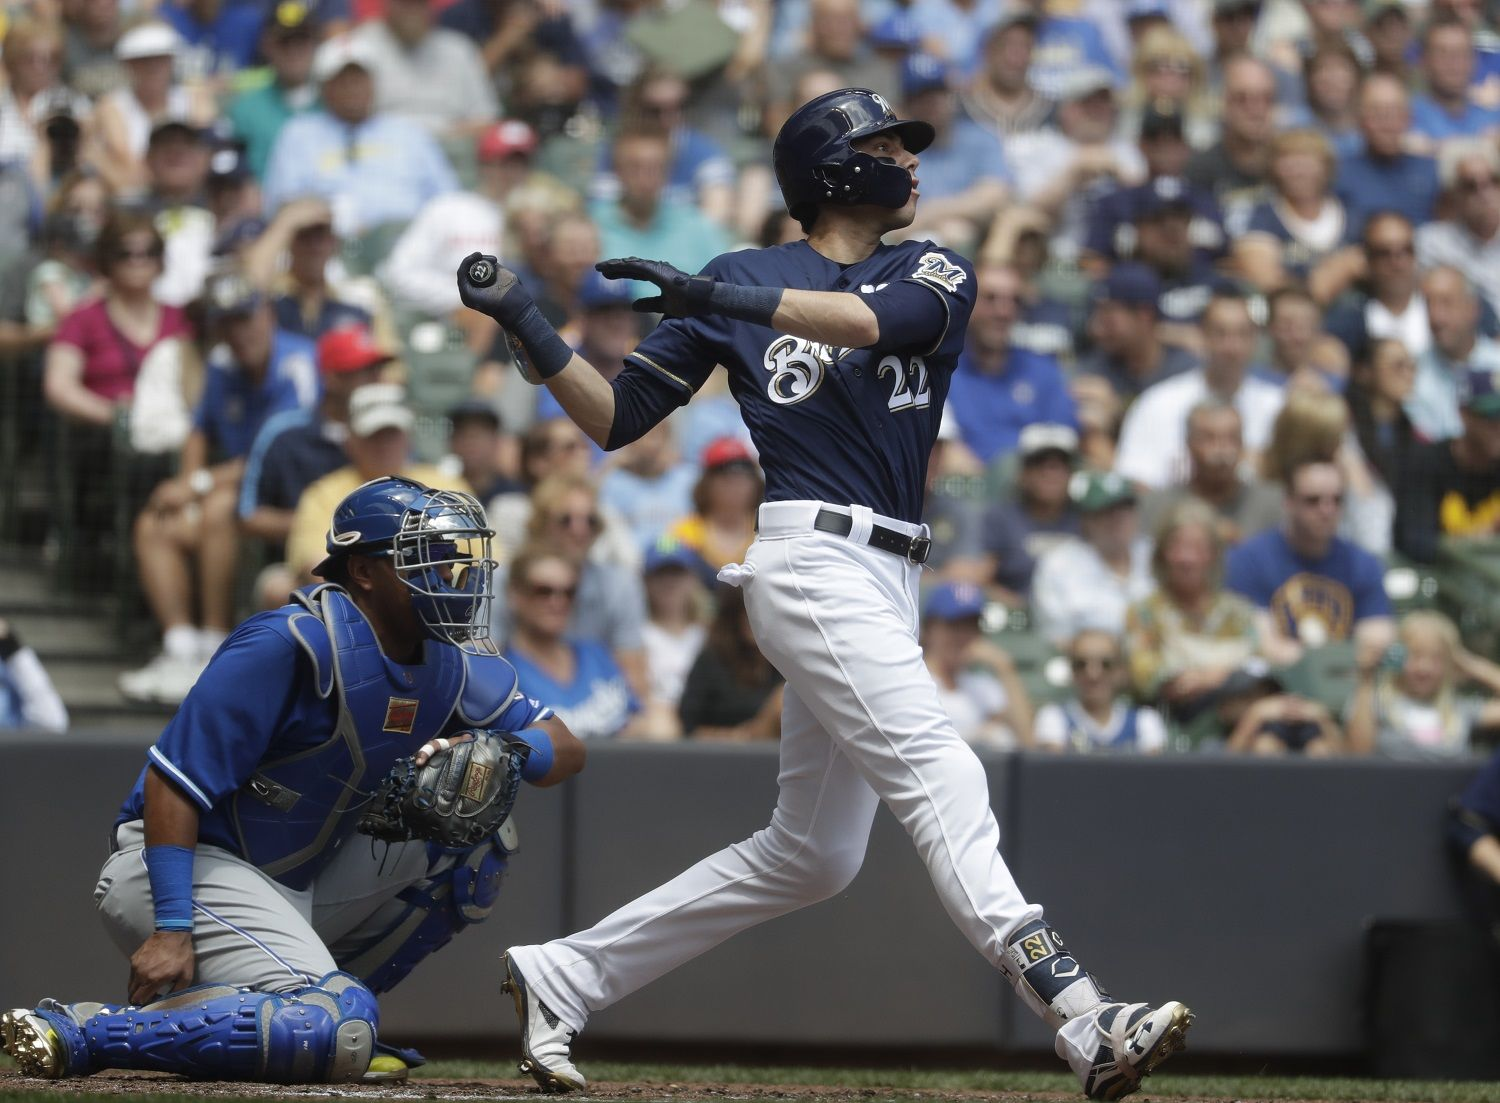 Milwaukee Brewers' Christian Yelich hits a double during the third inning of a baseball game against the Kansas City Royals Wednesday, June 27, 2018, in Milwaukee. (AP Photo/Morry Gash)